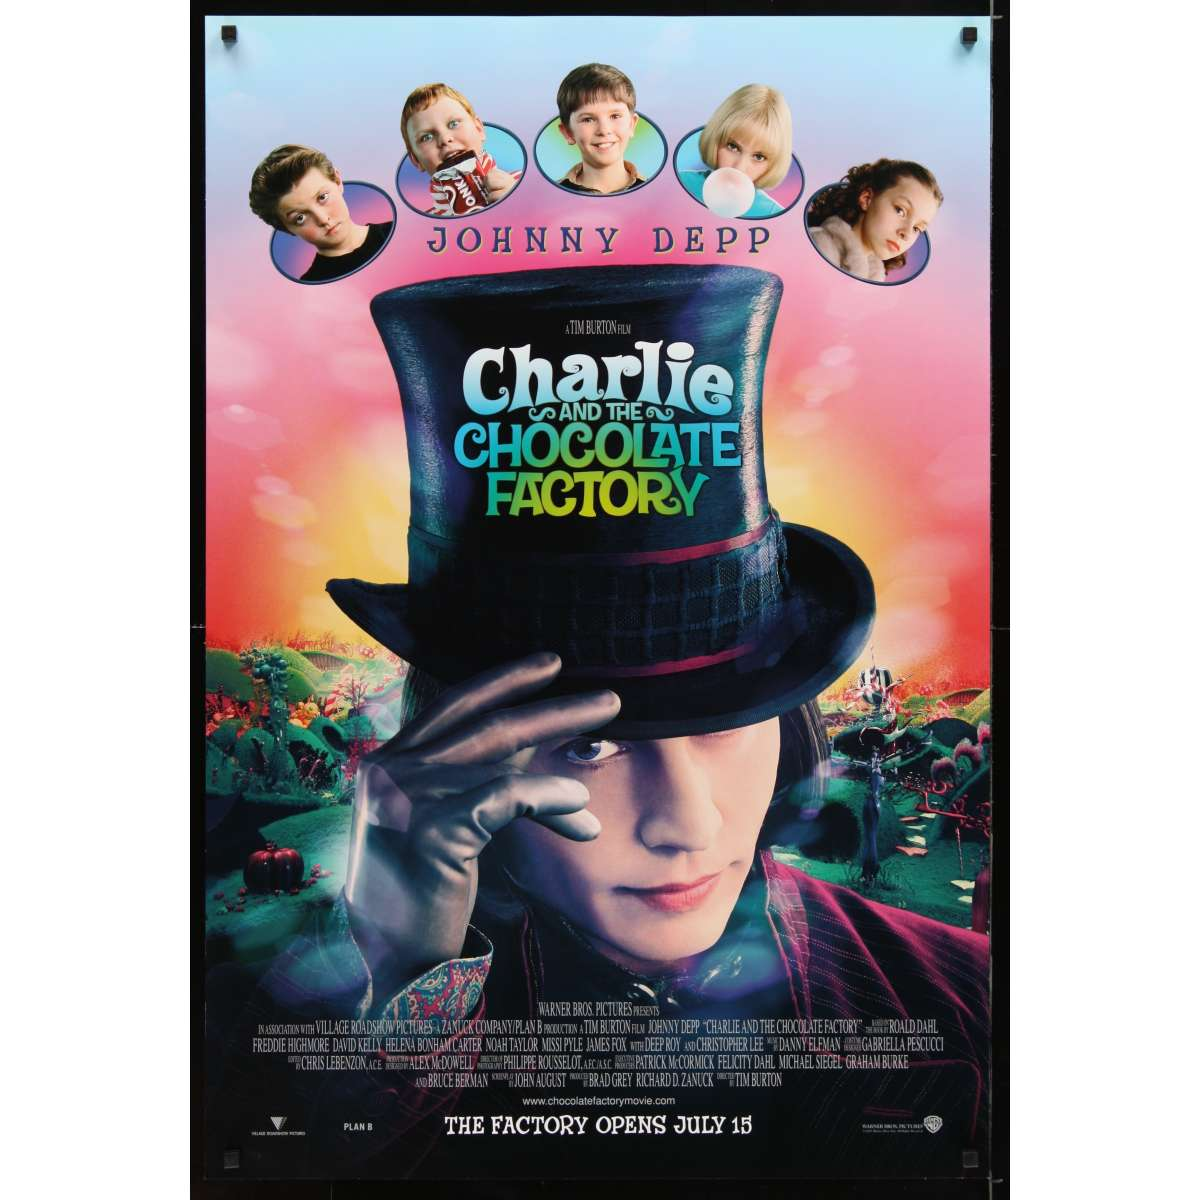 charlie and the chocolate factory 2005 Charlie and the chocolate factory 2005 bluray full movie free download download charlie and the chocolate factory 2005 full movie free high speed download sd movies point.